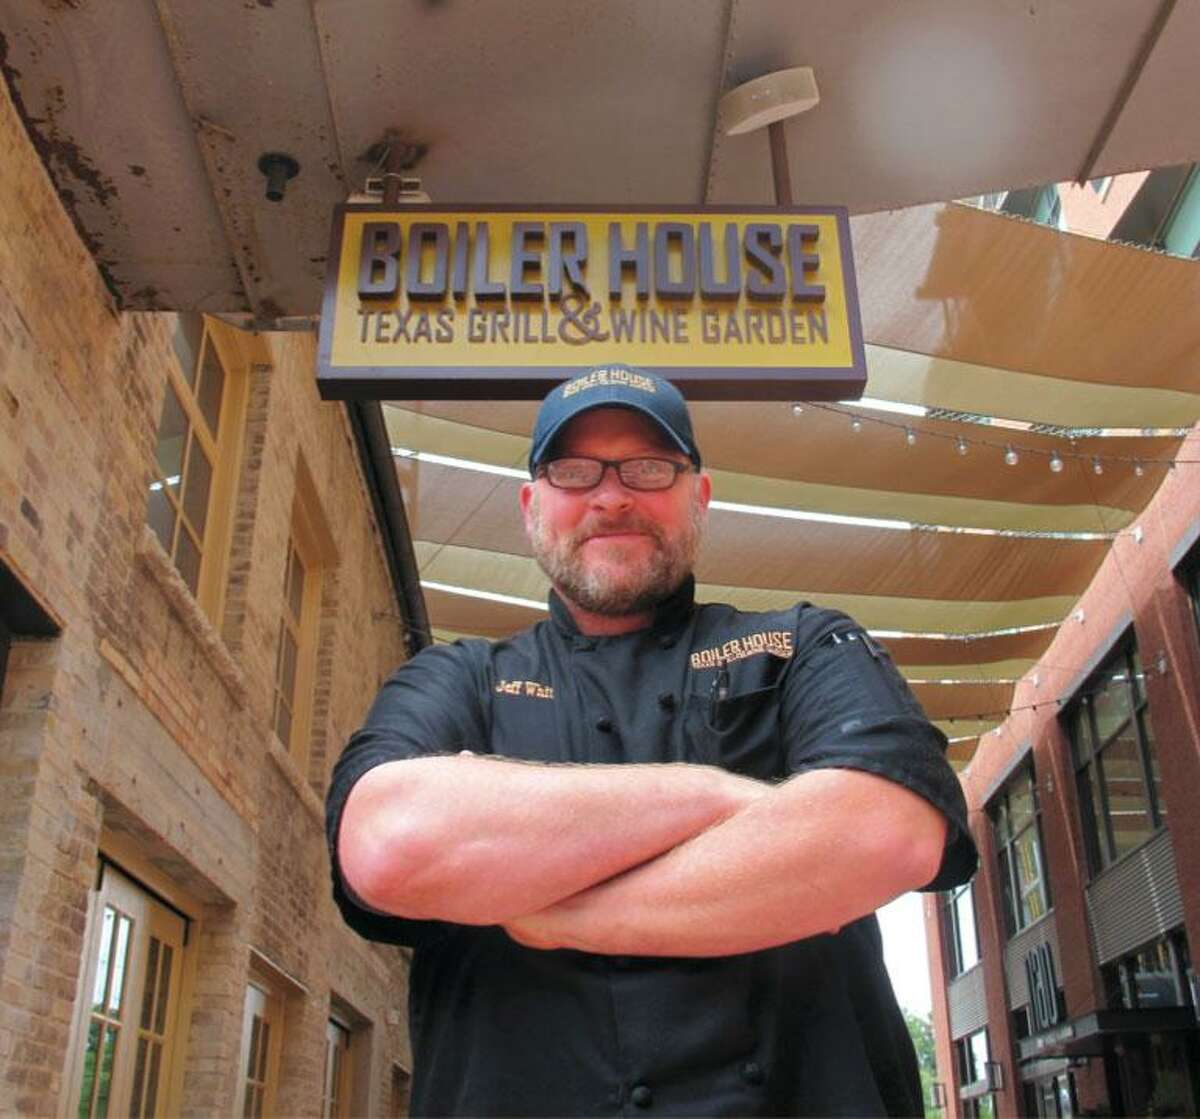 Jeff White of the Boiler House, a restaurant inside The Pearl, will be the featured chef at an upcoming Saint City Super Club event in January.